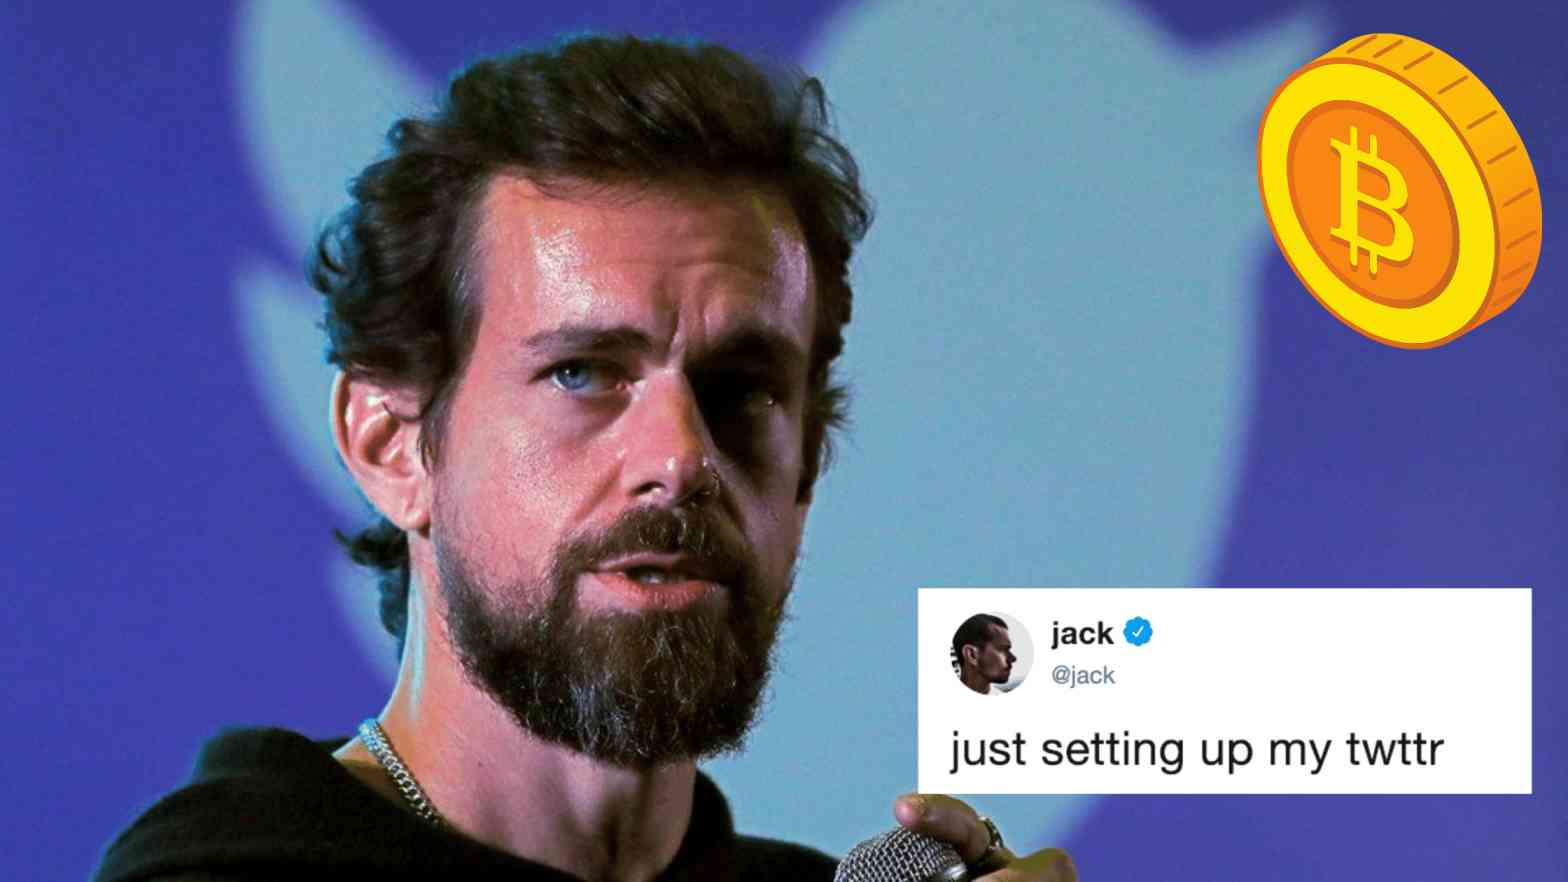 Jack Dorsey To Convert His Proceeding from Auction Of First Tweet To Bitcoin